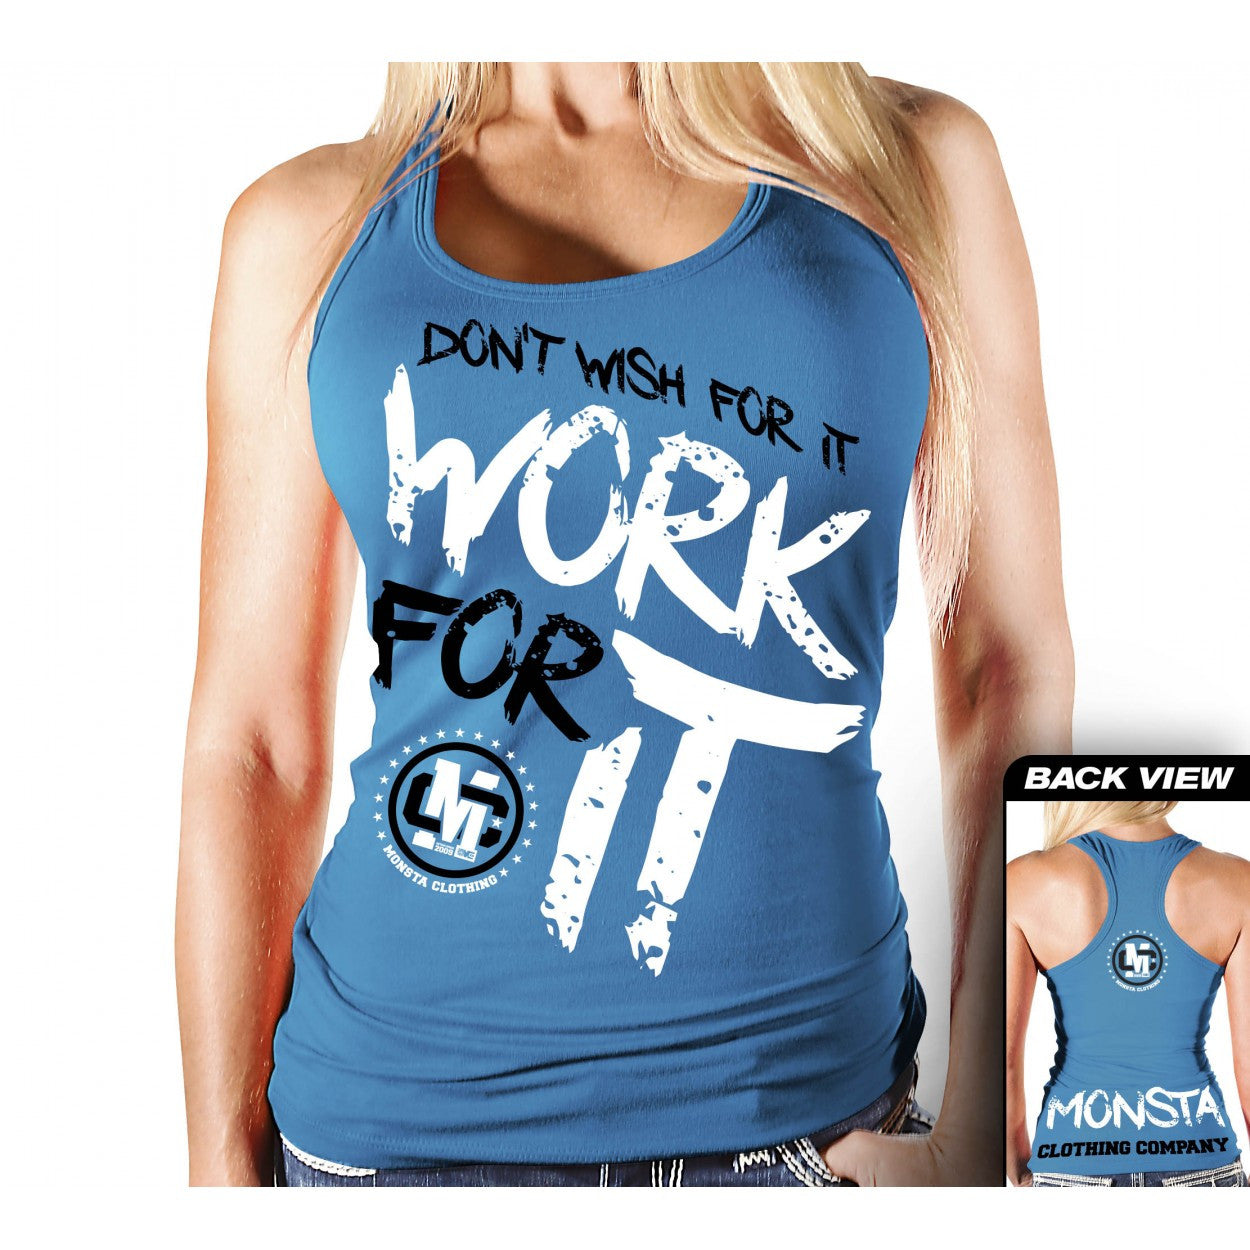 Tank: Work For It- 207 - Monsta Clothing Australia